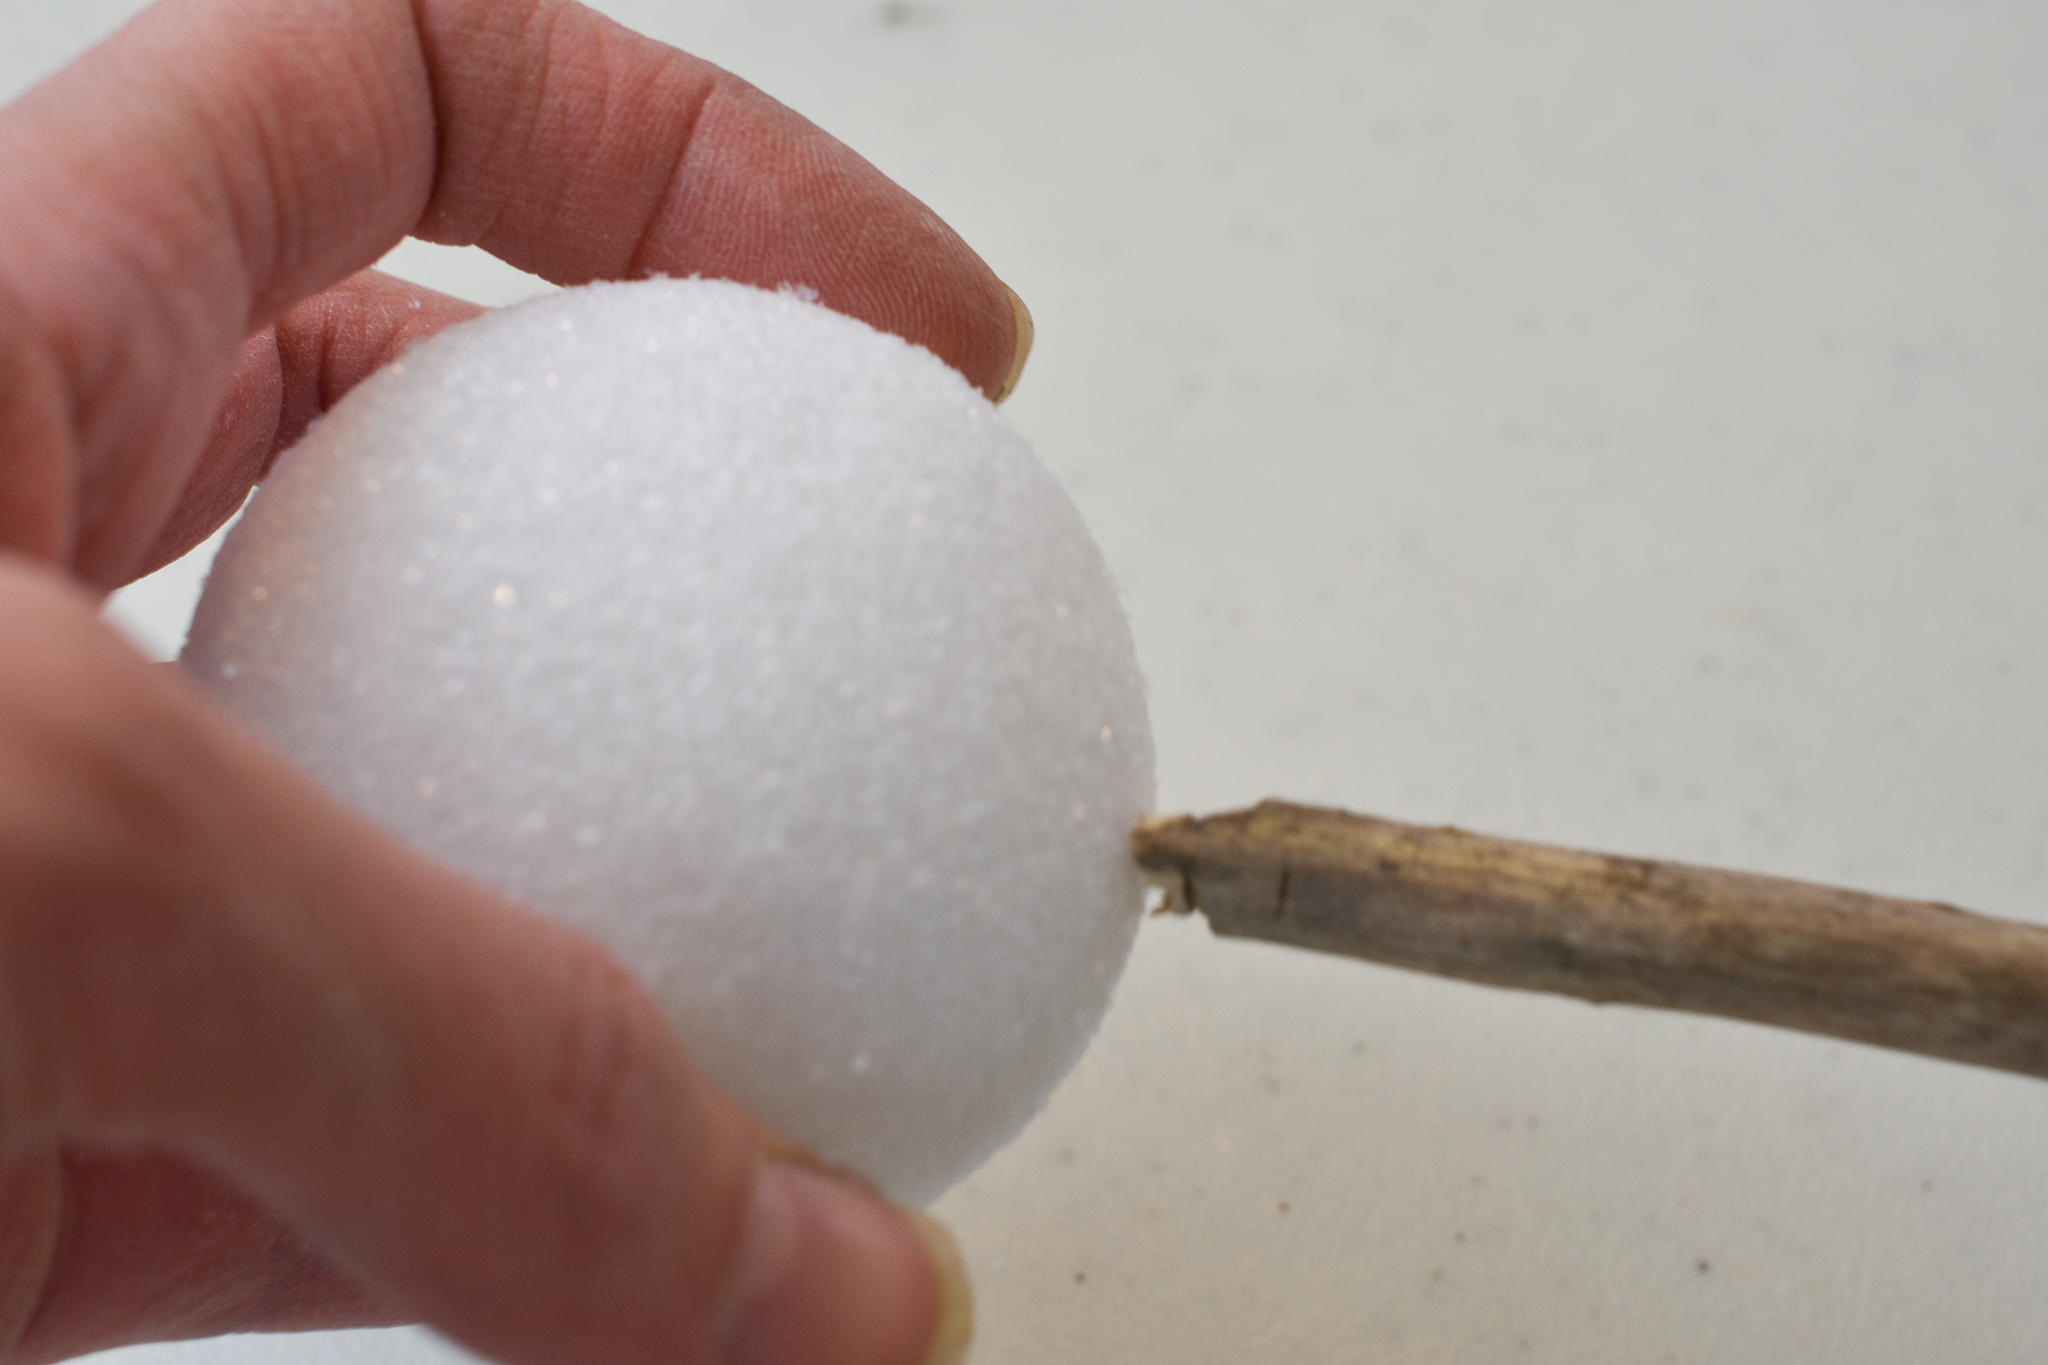 poking a hole in a foam ball with a twig